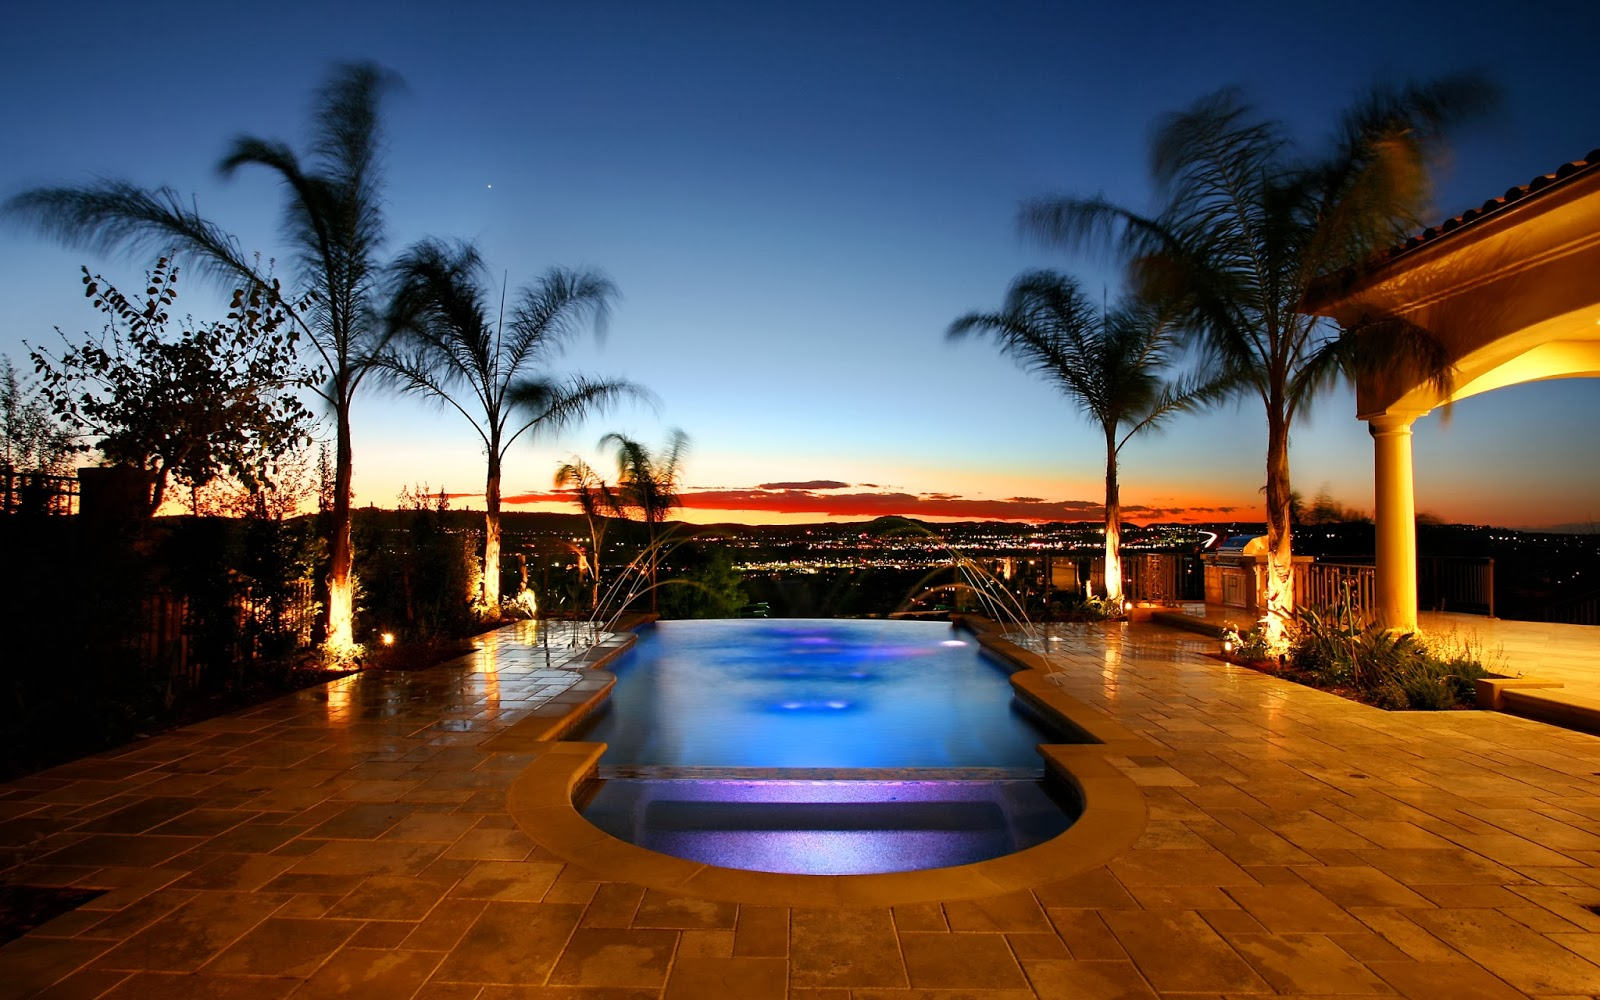 picture collection: Luxury Pool Resort Romantic Landscape Nature Hd City Wallpapers